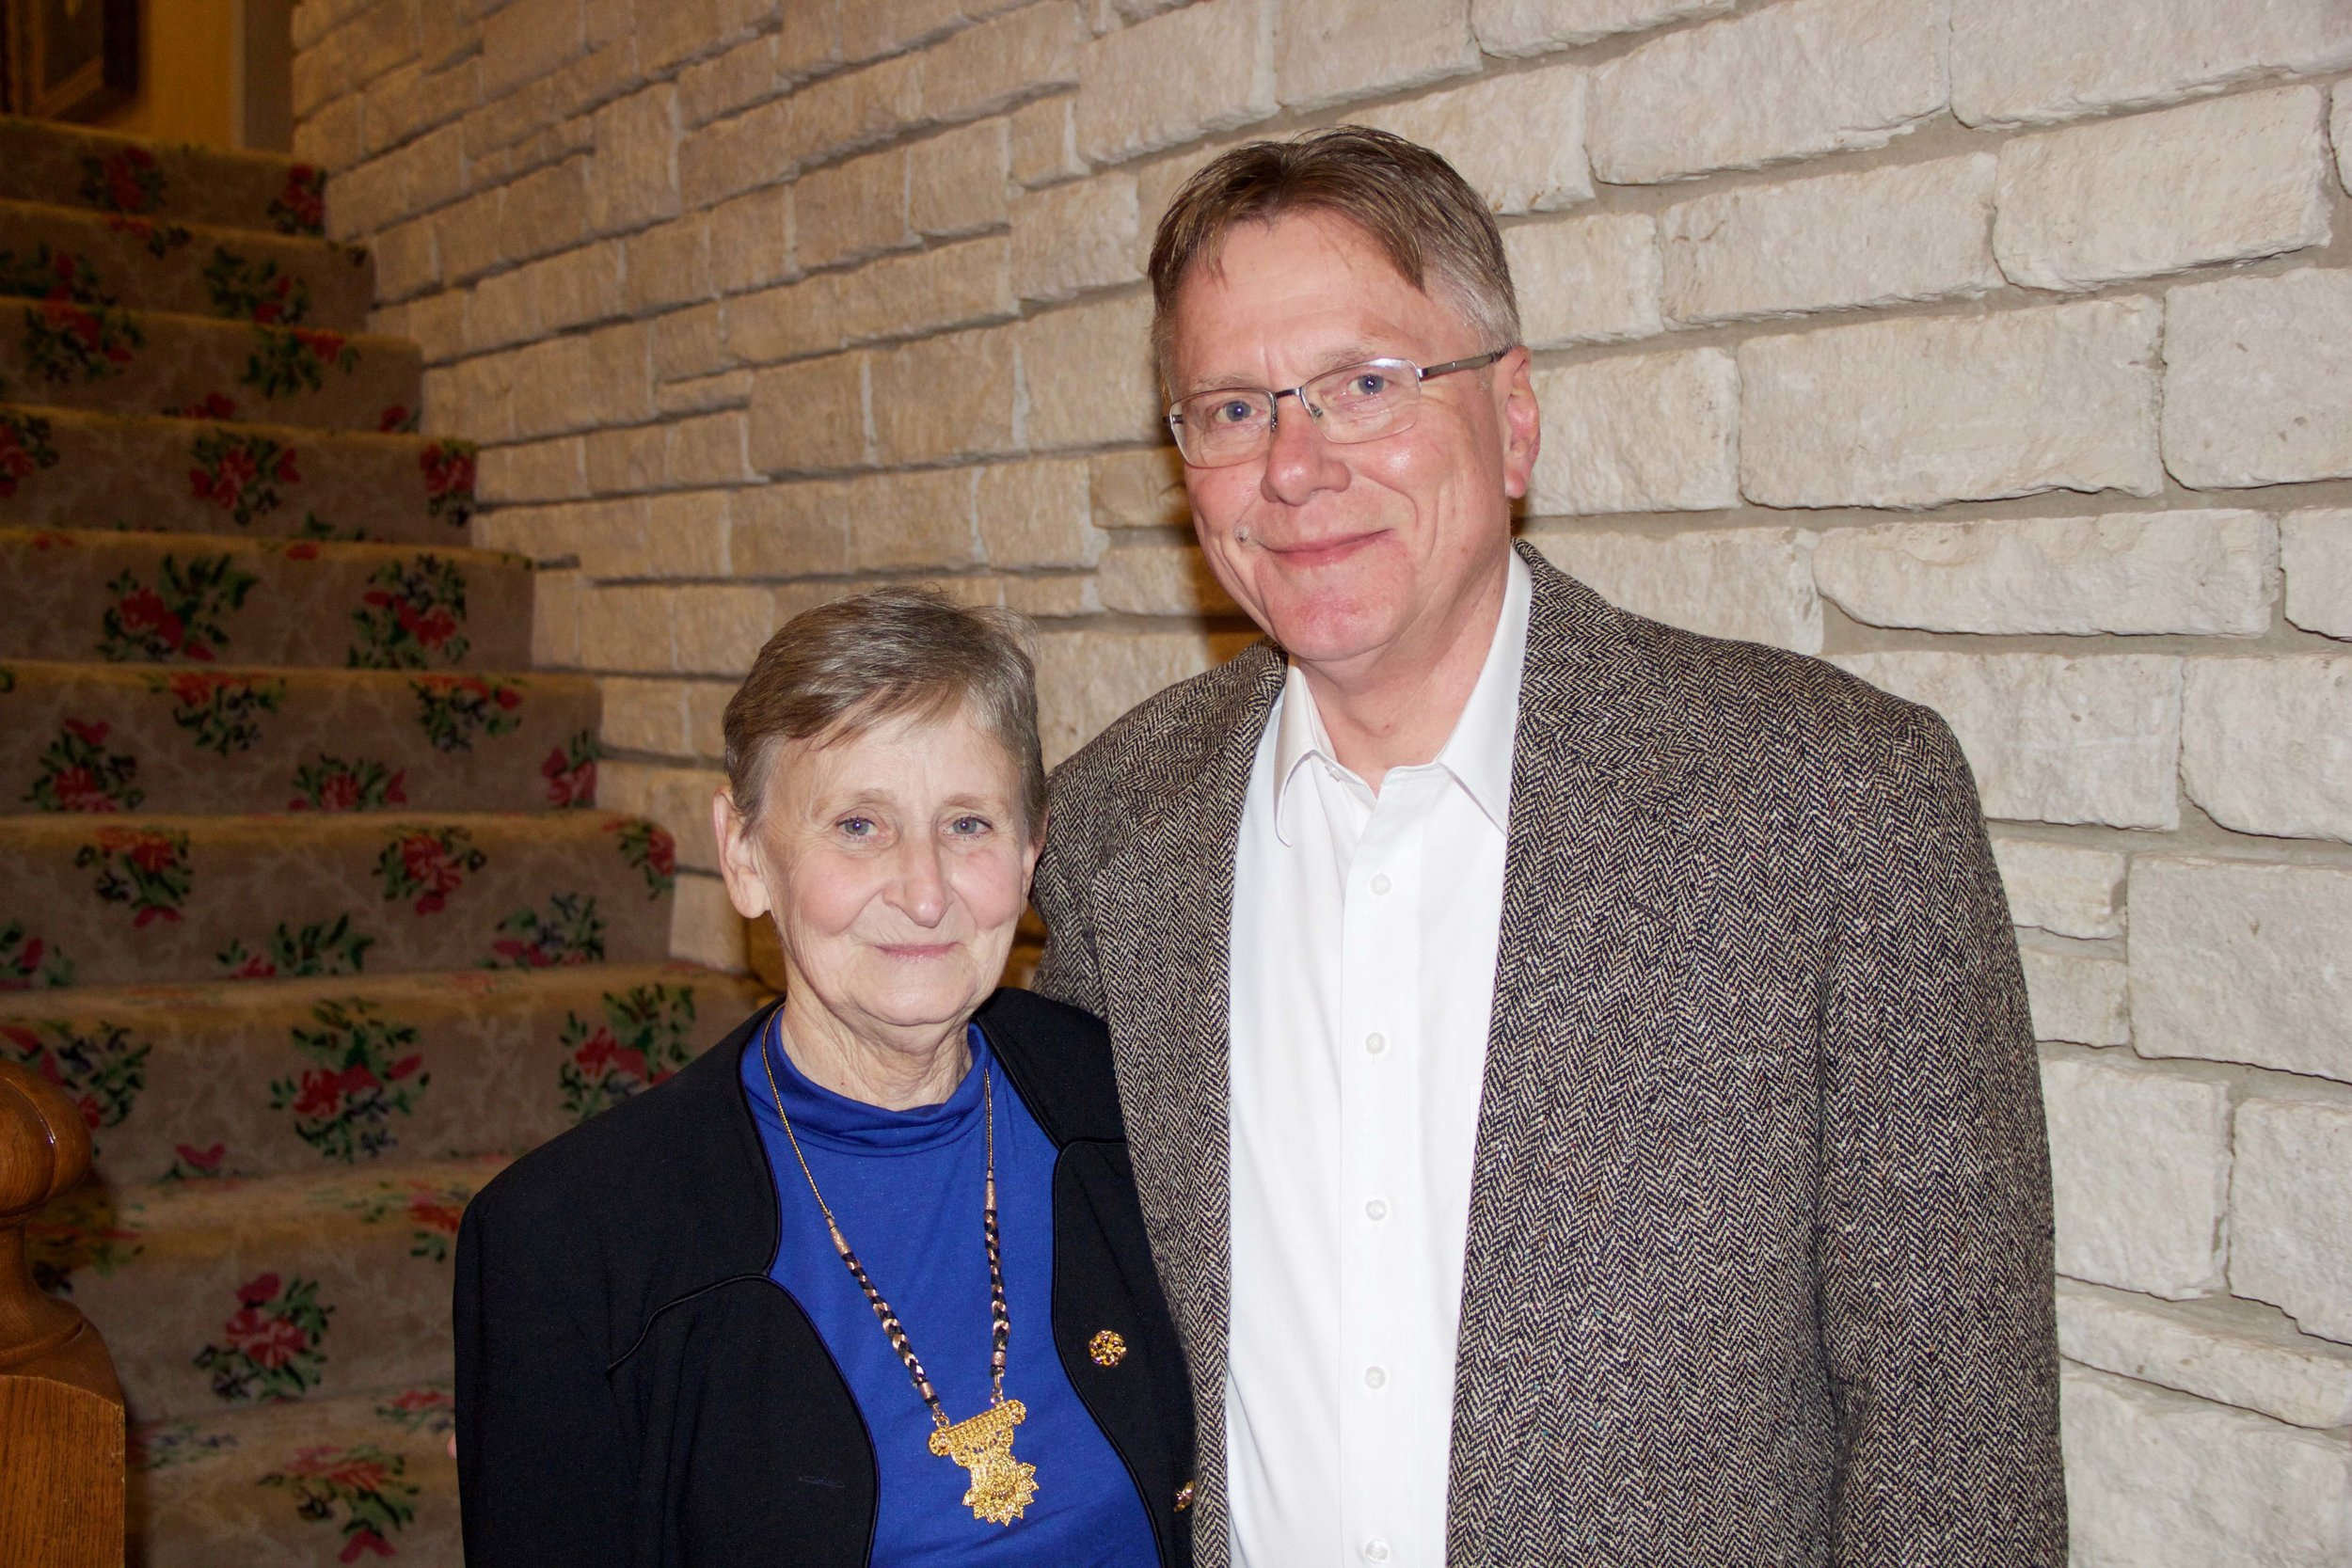 Pat and Dr. Tom Wagy